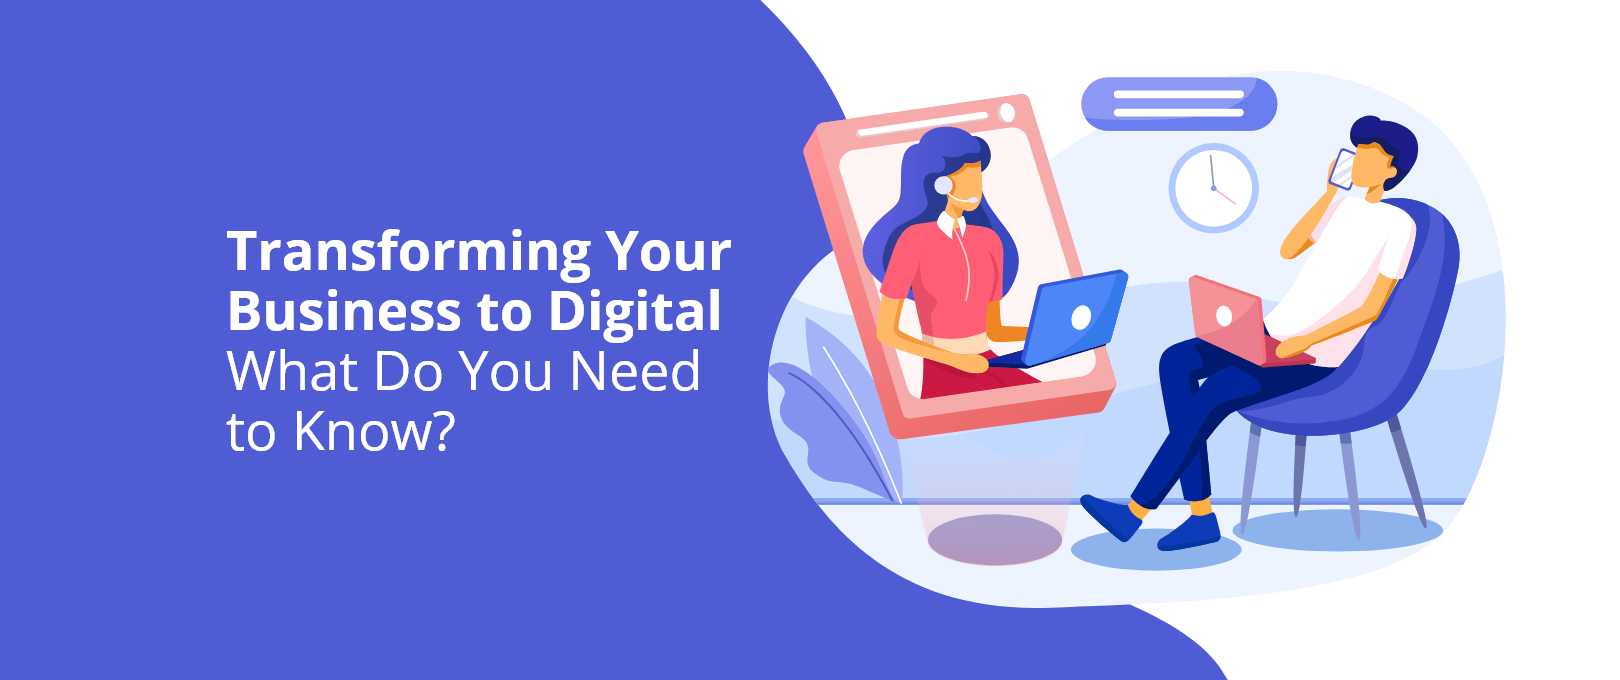 Transforming Your Business to Digital. What Do You Need to Know